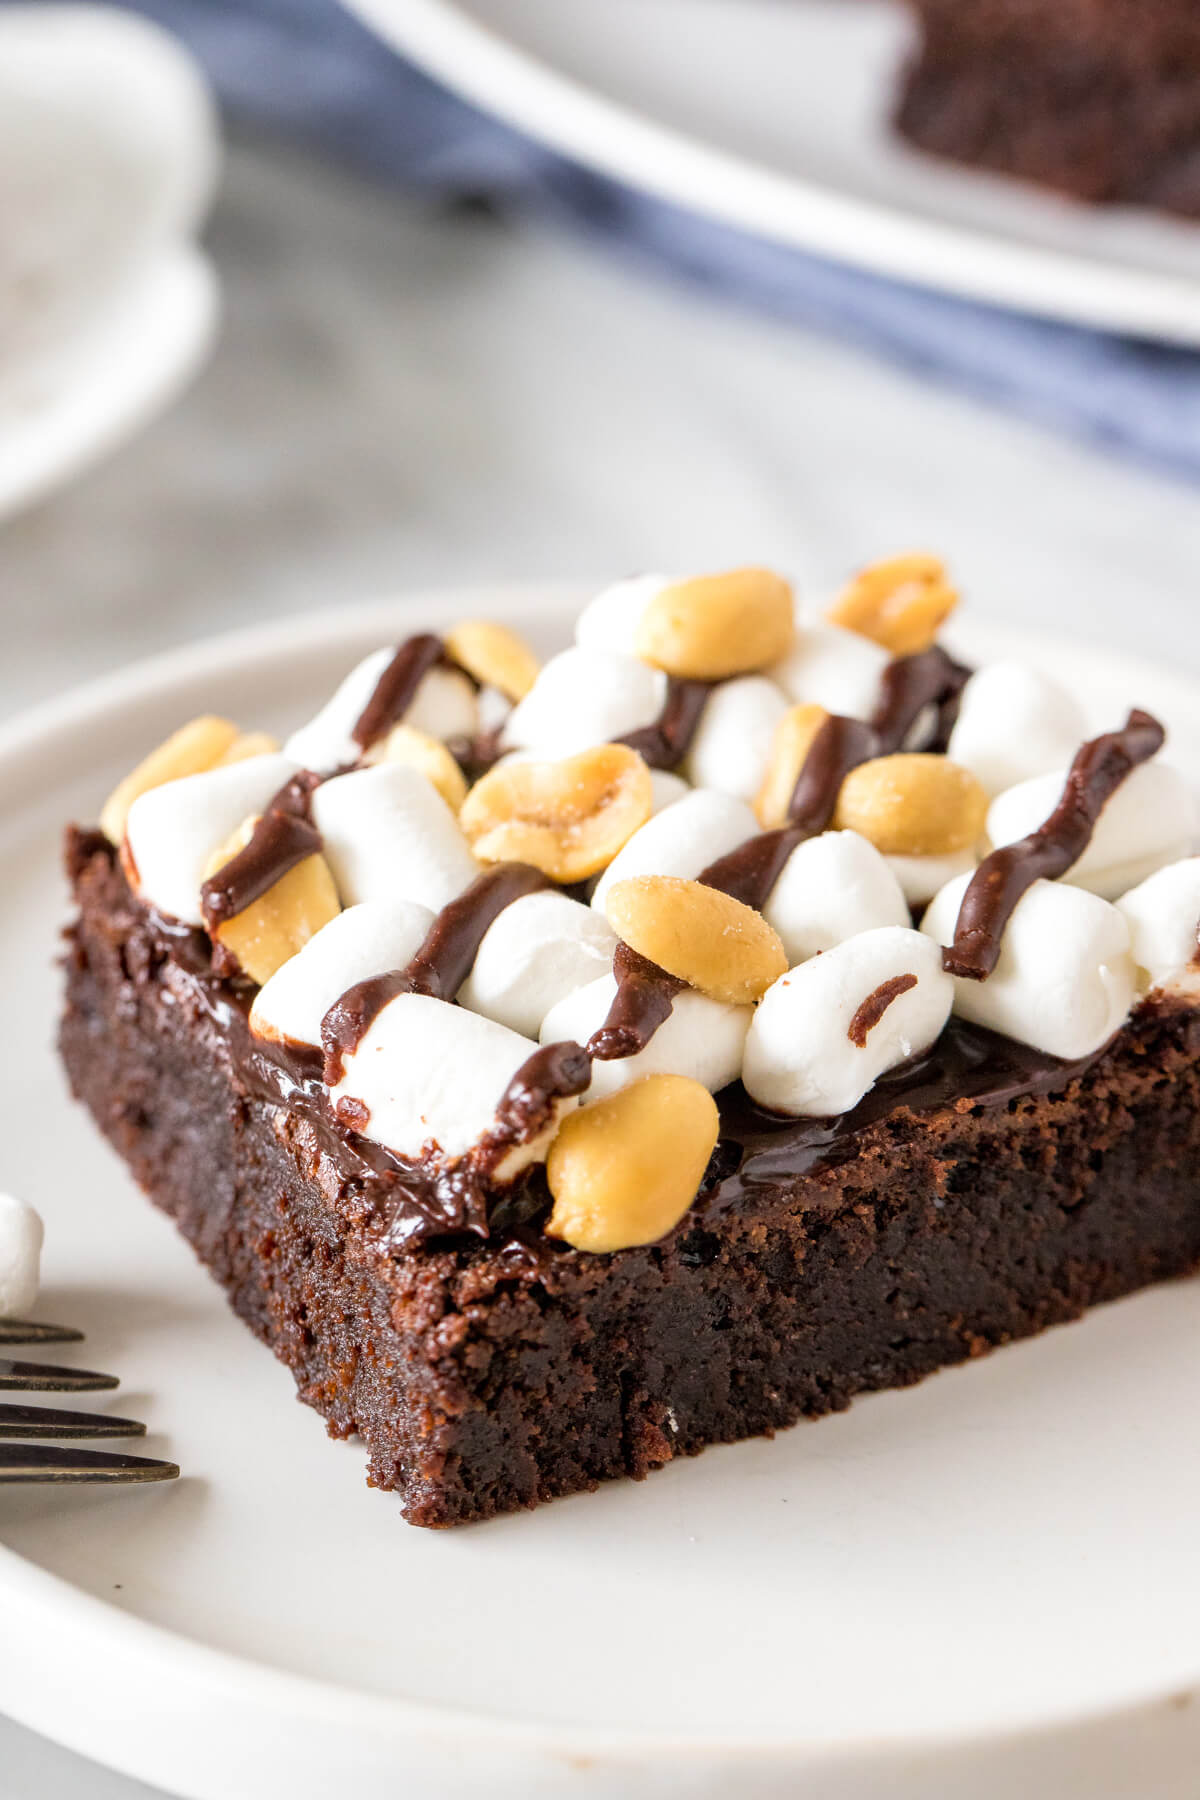 Piece of rocky road brownie topped with marshmallows and peanuts